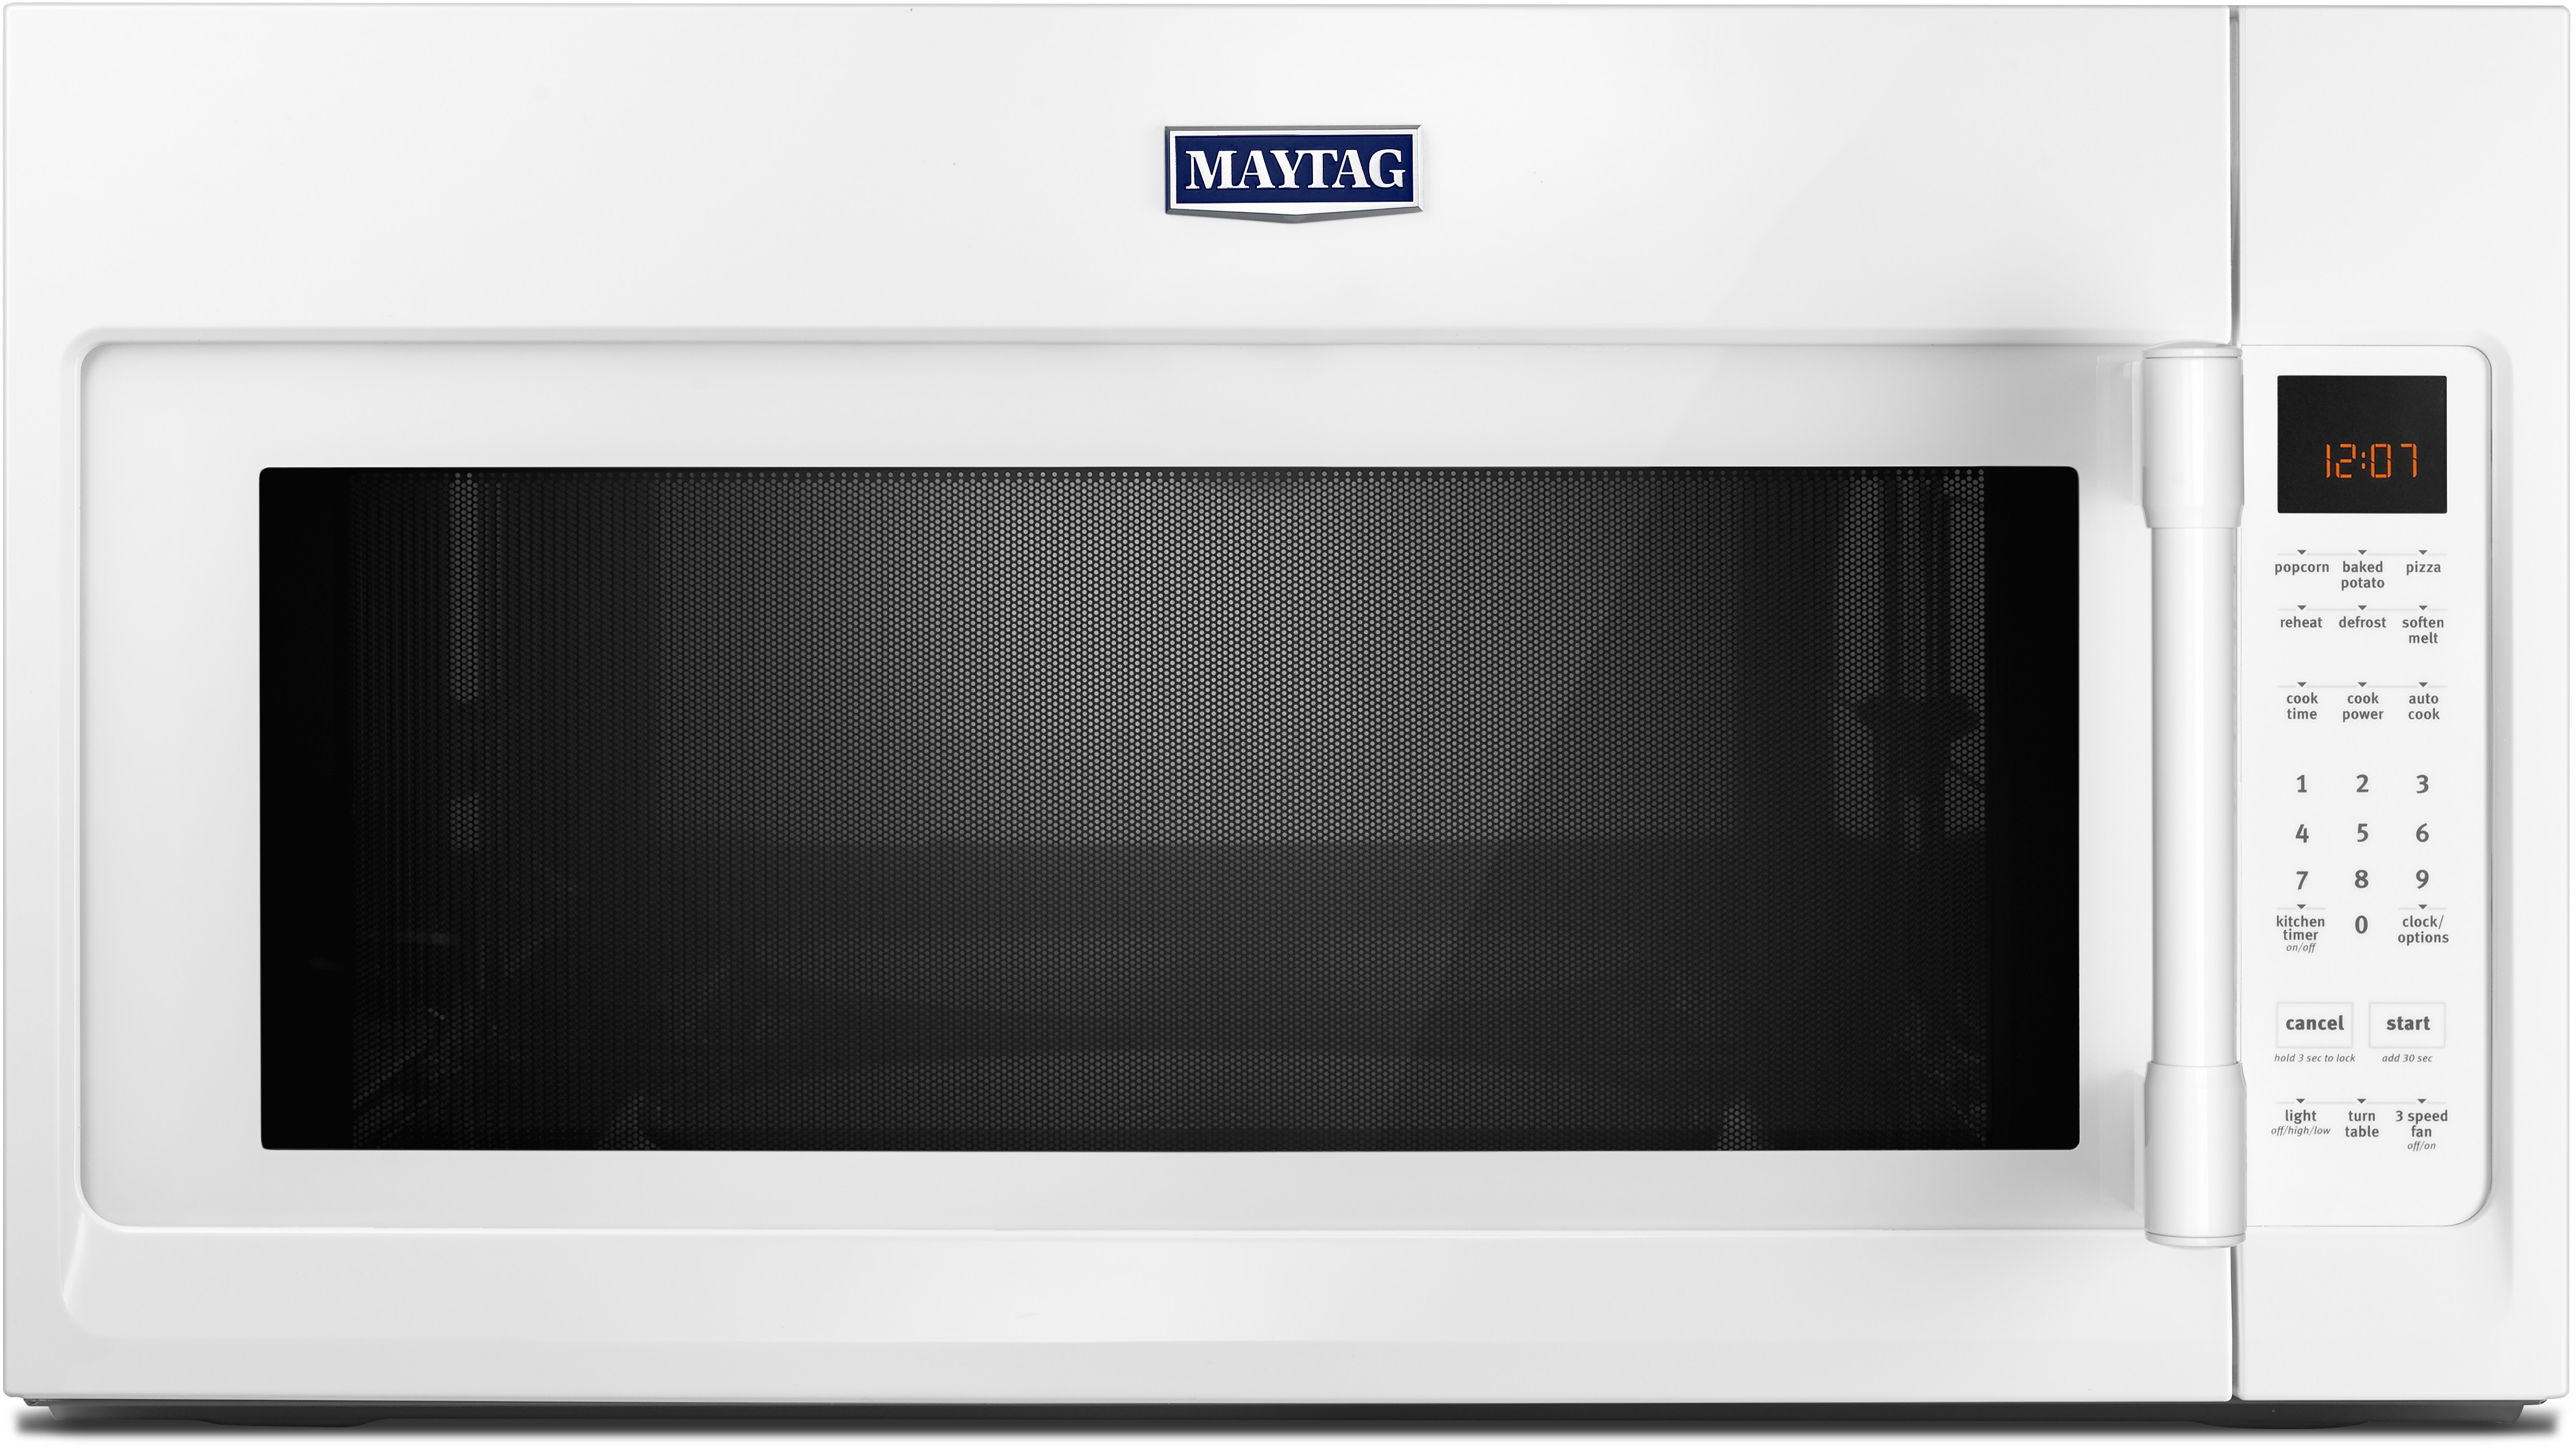 Maytag Mmv4206fw 2 0 Cu Ft Over The Range Microwave Oven With 1 000 Cooking Watts 400 Cfm Sensor Reheat Multiple Sd Exhaust Fan Charcoal Odor